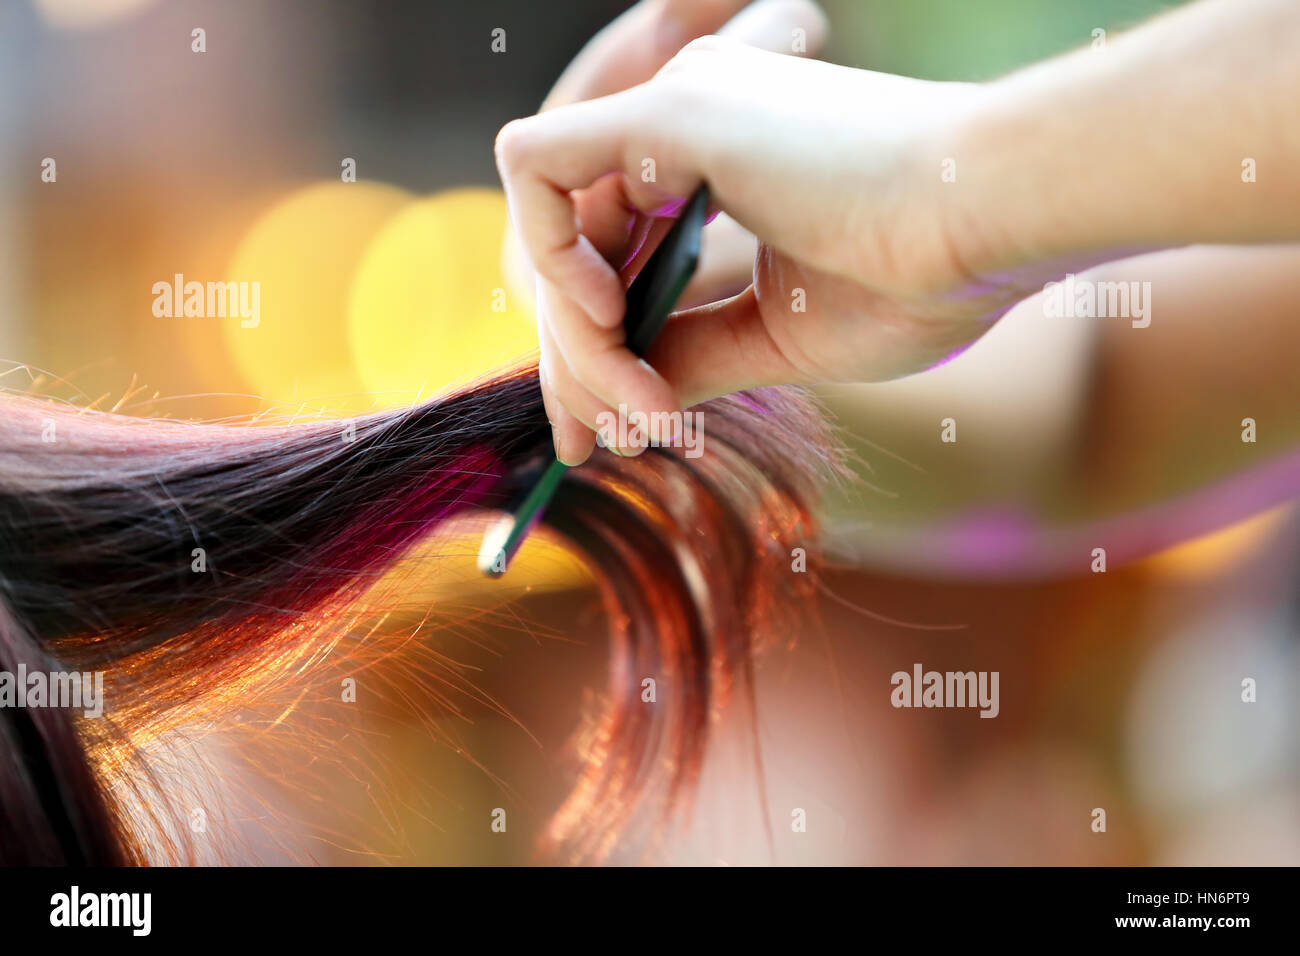 Hairdresser cutting and modeling brown hair by scissors and comb - Stock Image